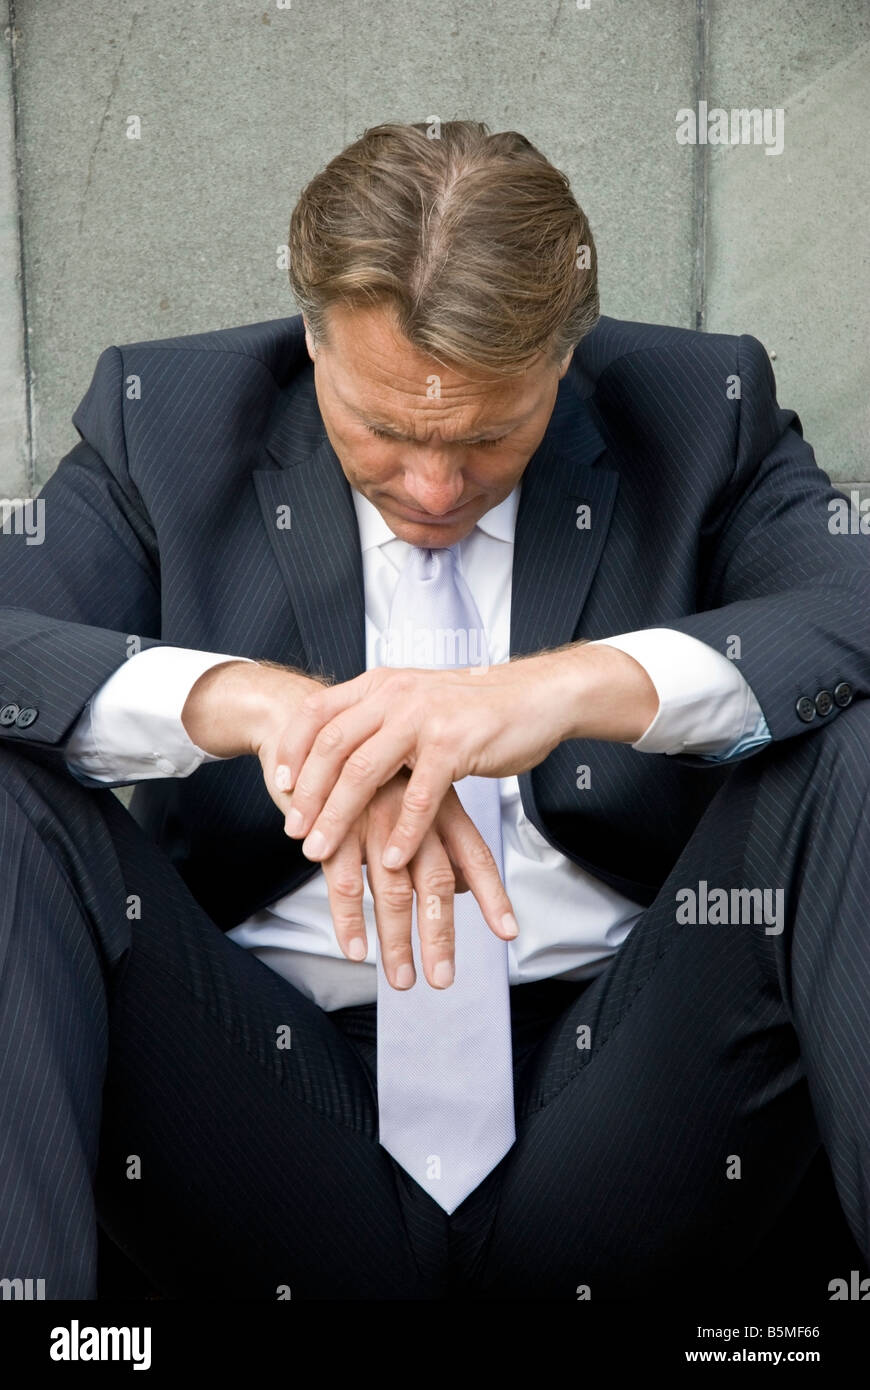 A sad stressed and dejected businessman sits on the floor alone outside his former workplace - Stock Image